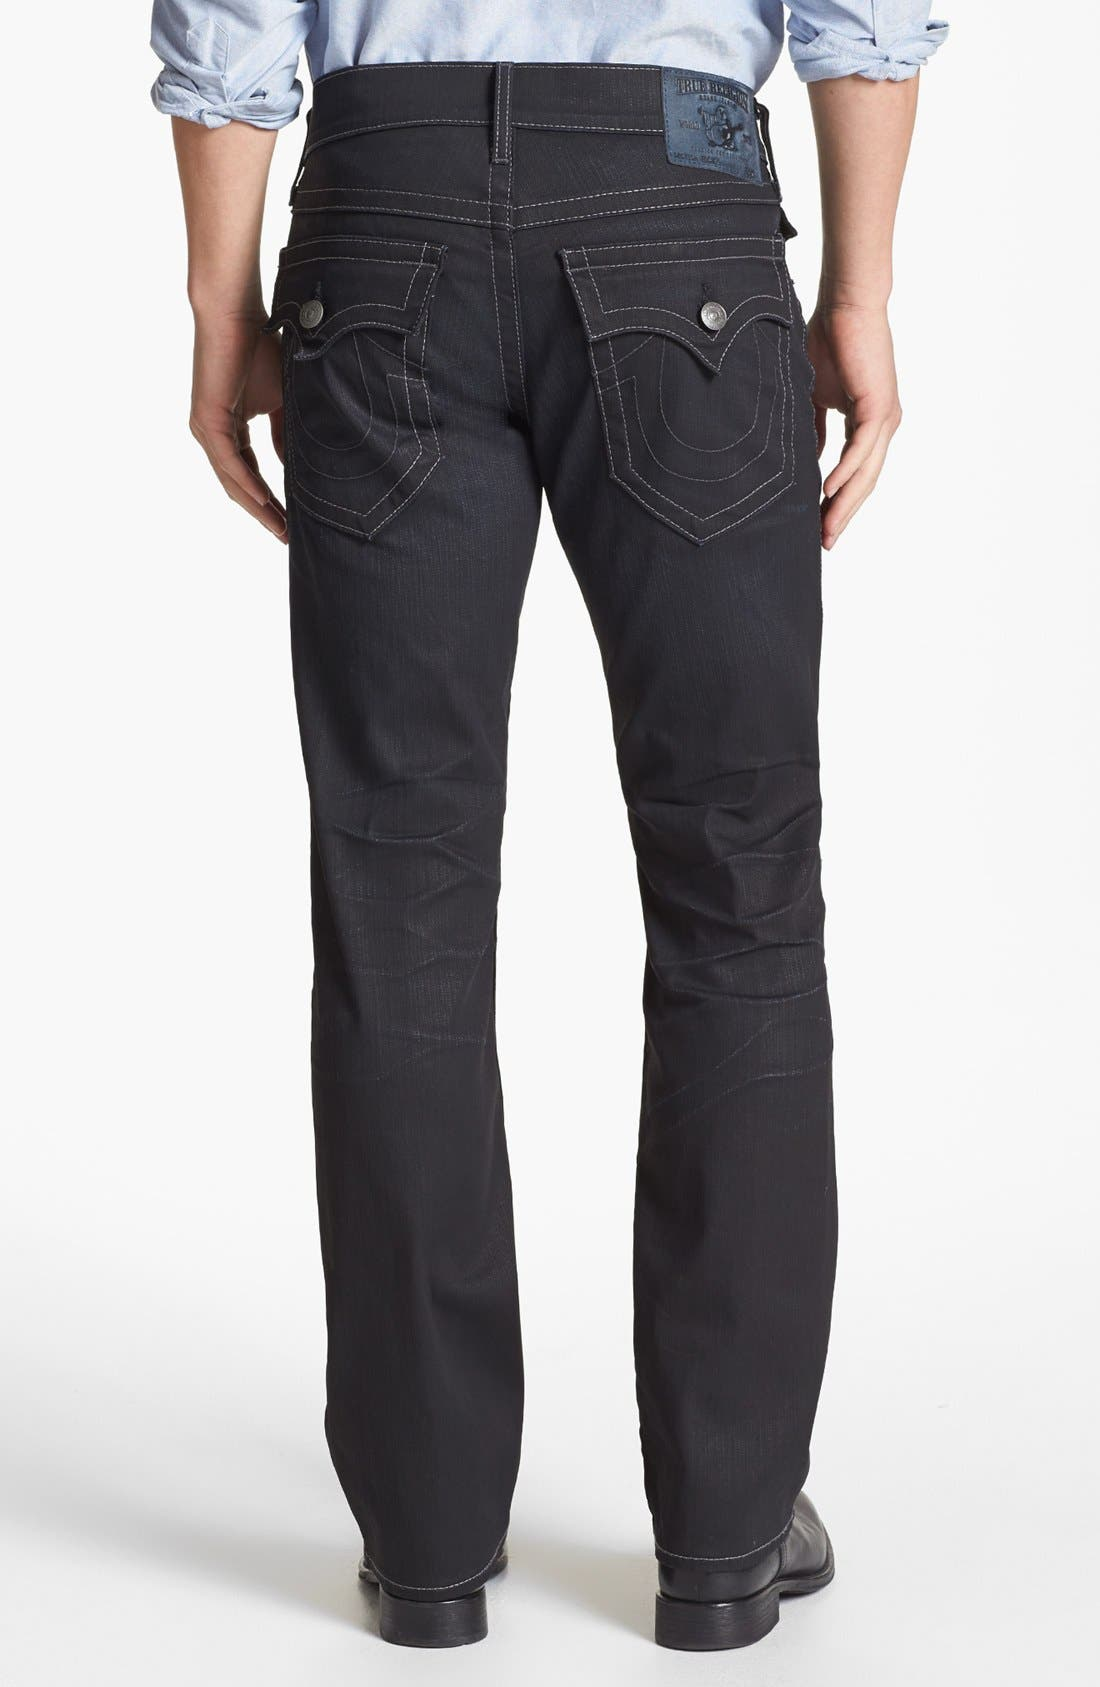 Alternate Image 1 Selected - True Religion Brand Jeans 'Ricky' Coated Straight Leg Jeans (Gbd Black Rider)